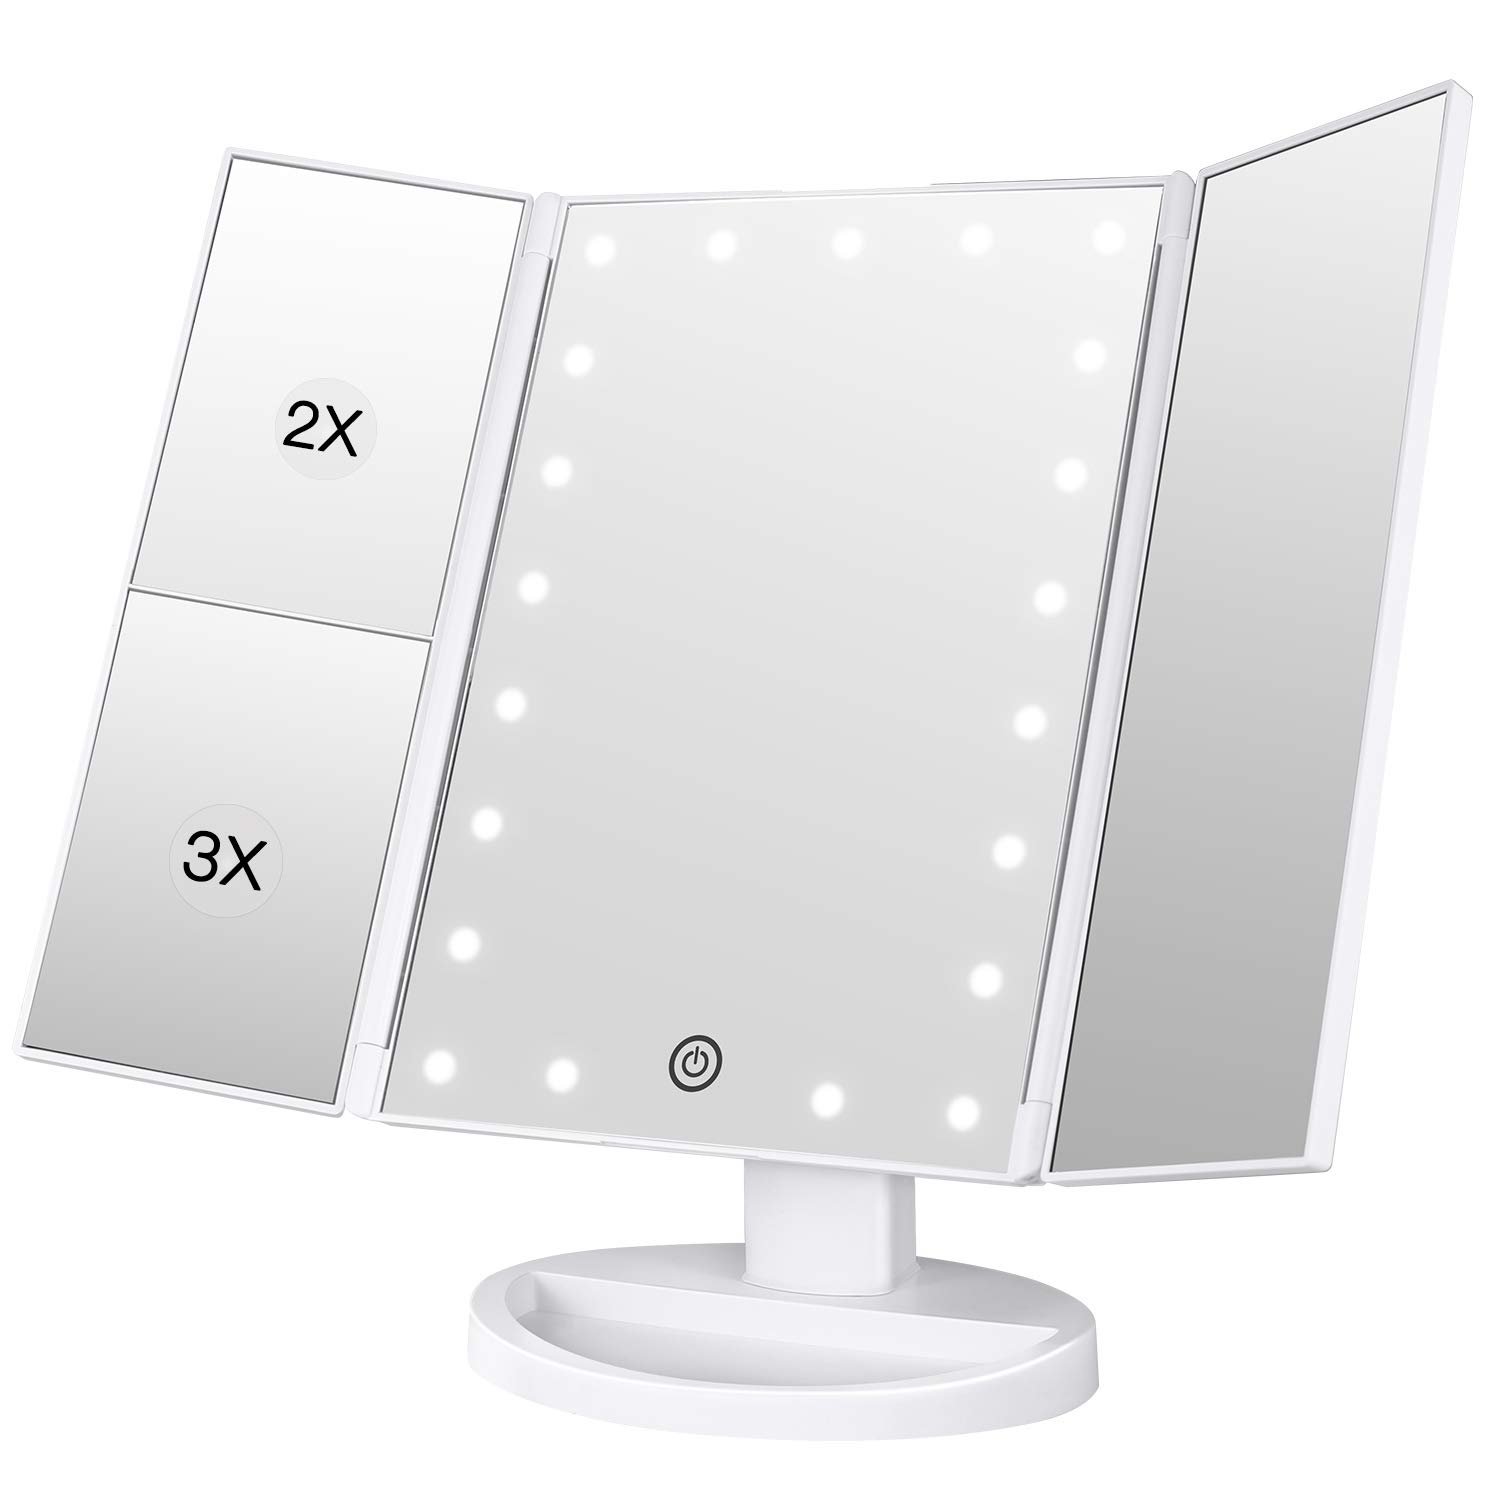 BESTOPE Makeup Vanity Mirror with 21 LED Lights, 3X/2X Magnifying Led Makeup Mirror with Touch Screen,Dual Power Supply,180° Adjustable Rotation,Countertop Cosmetic Mirror by BESTOPE